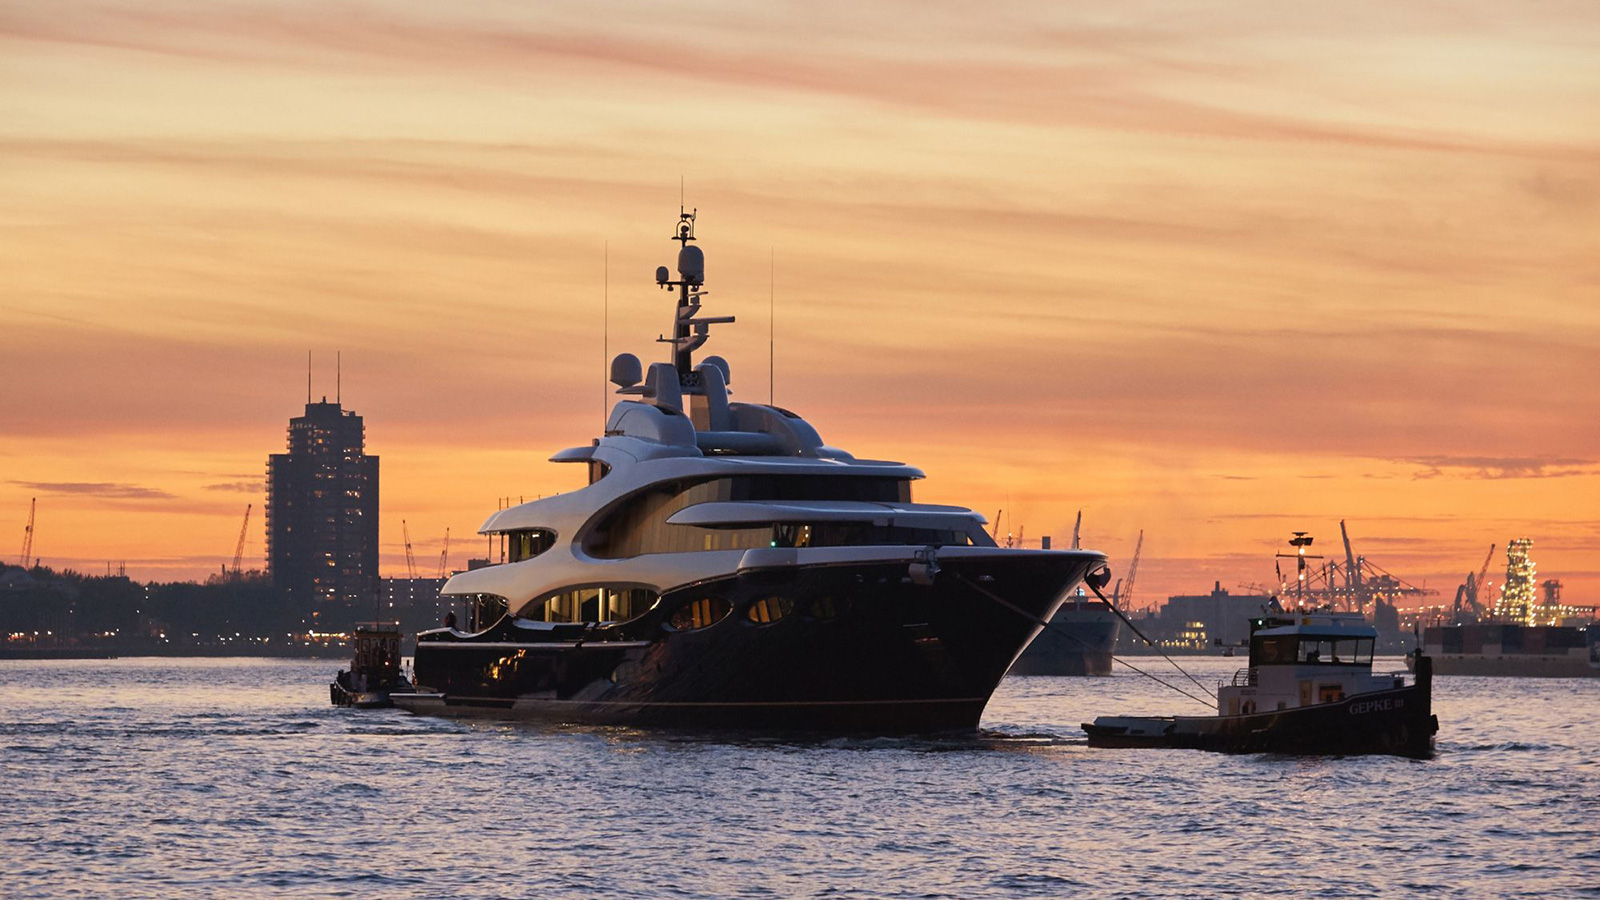 oceanco-super-yacht-y715-shortly-after-her-launch